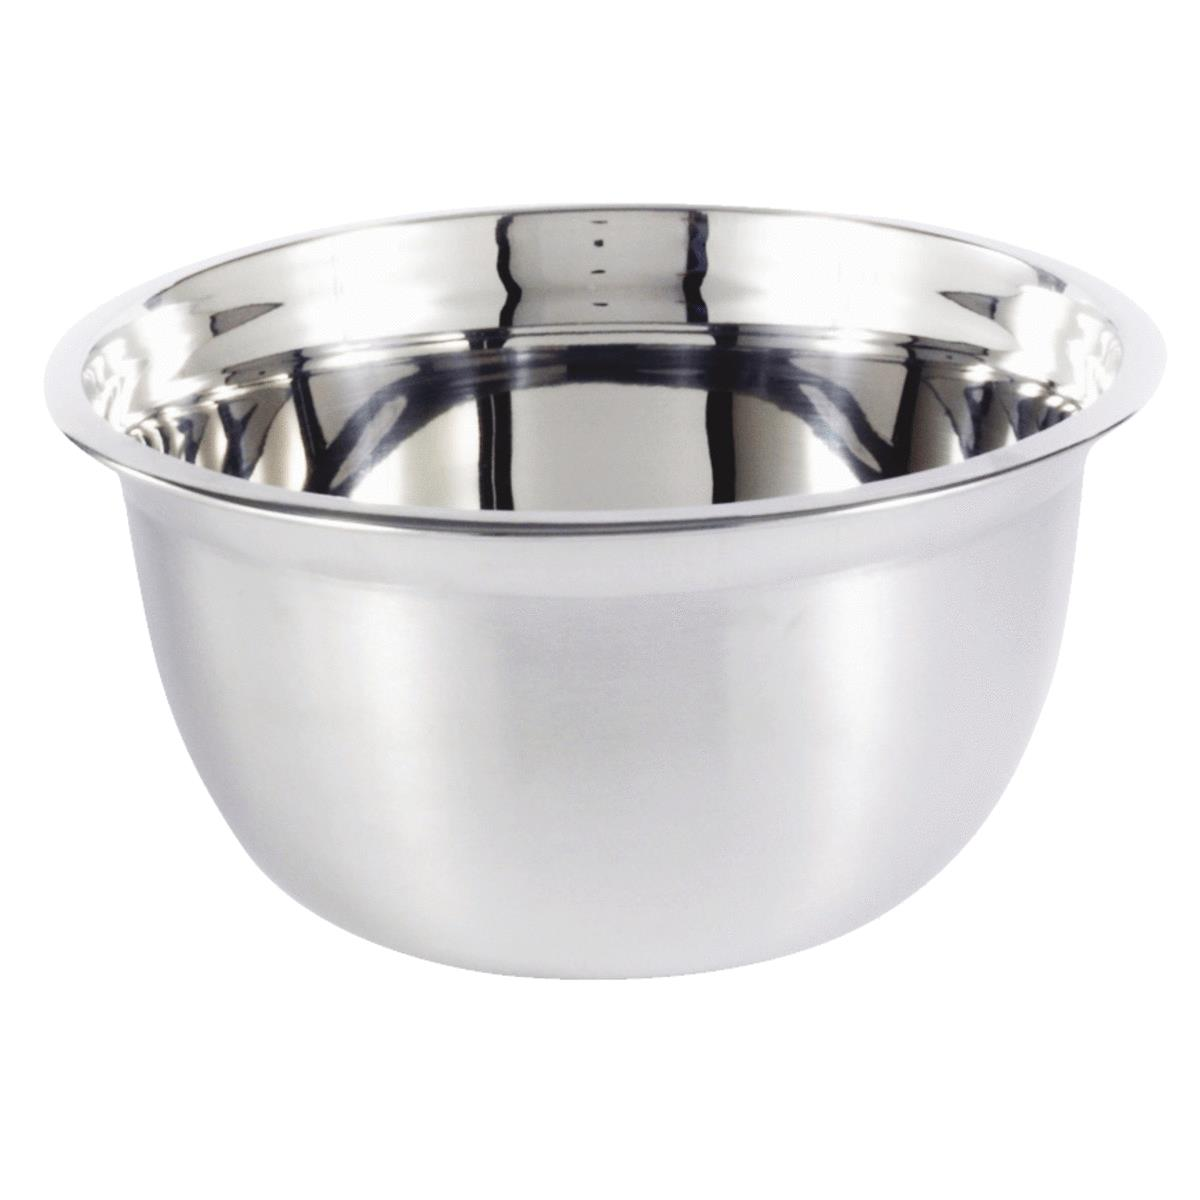 M E Heuck Stainless Steel Mixing Bowl